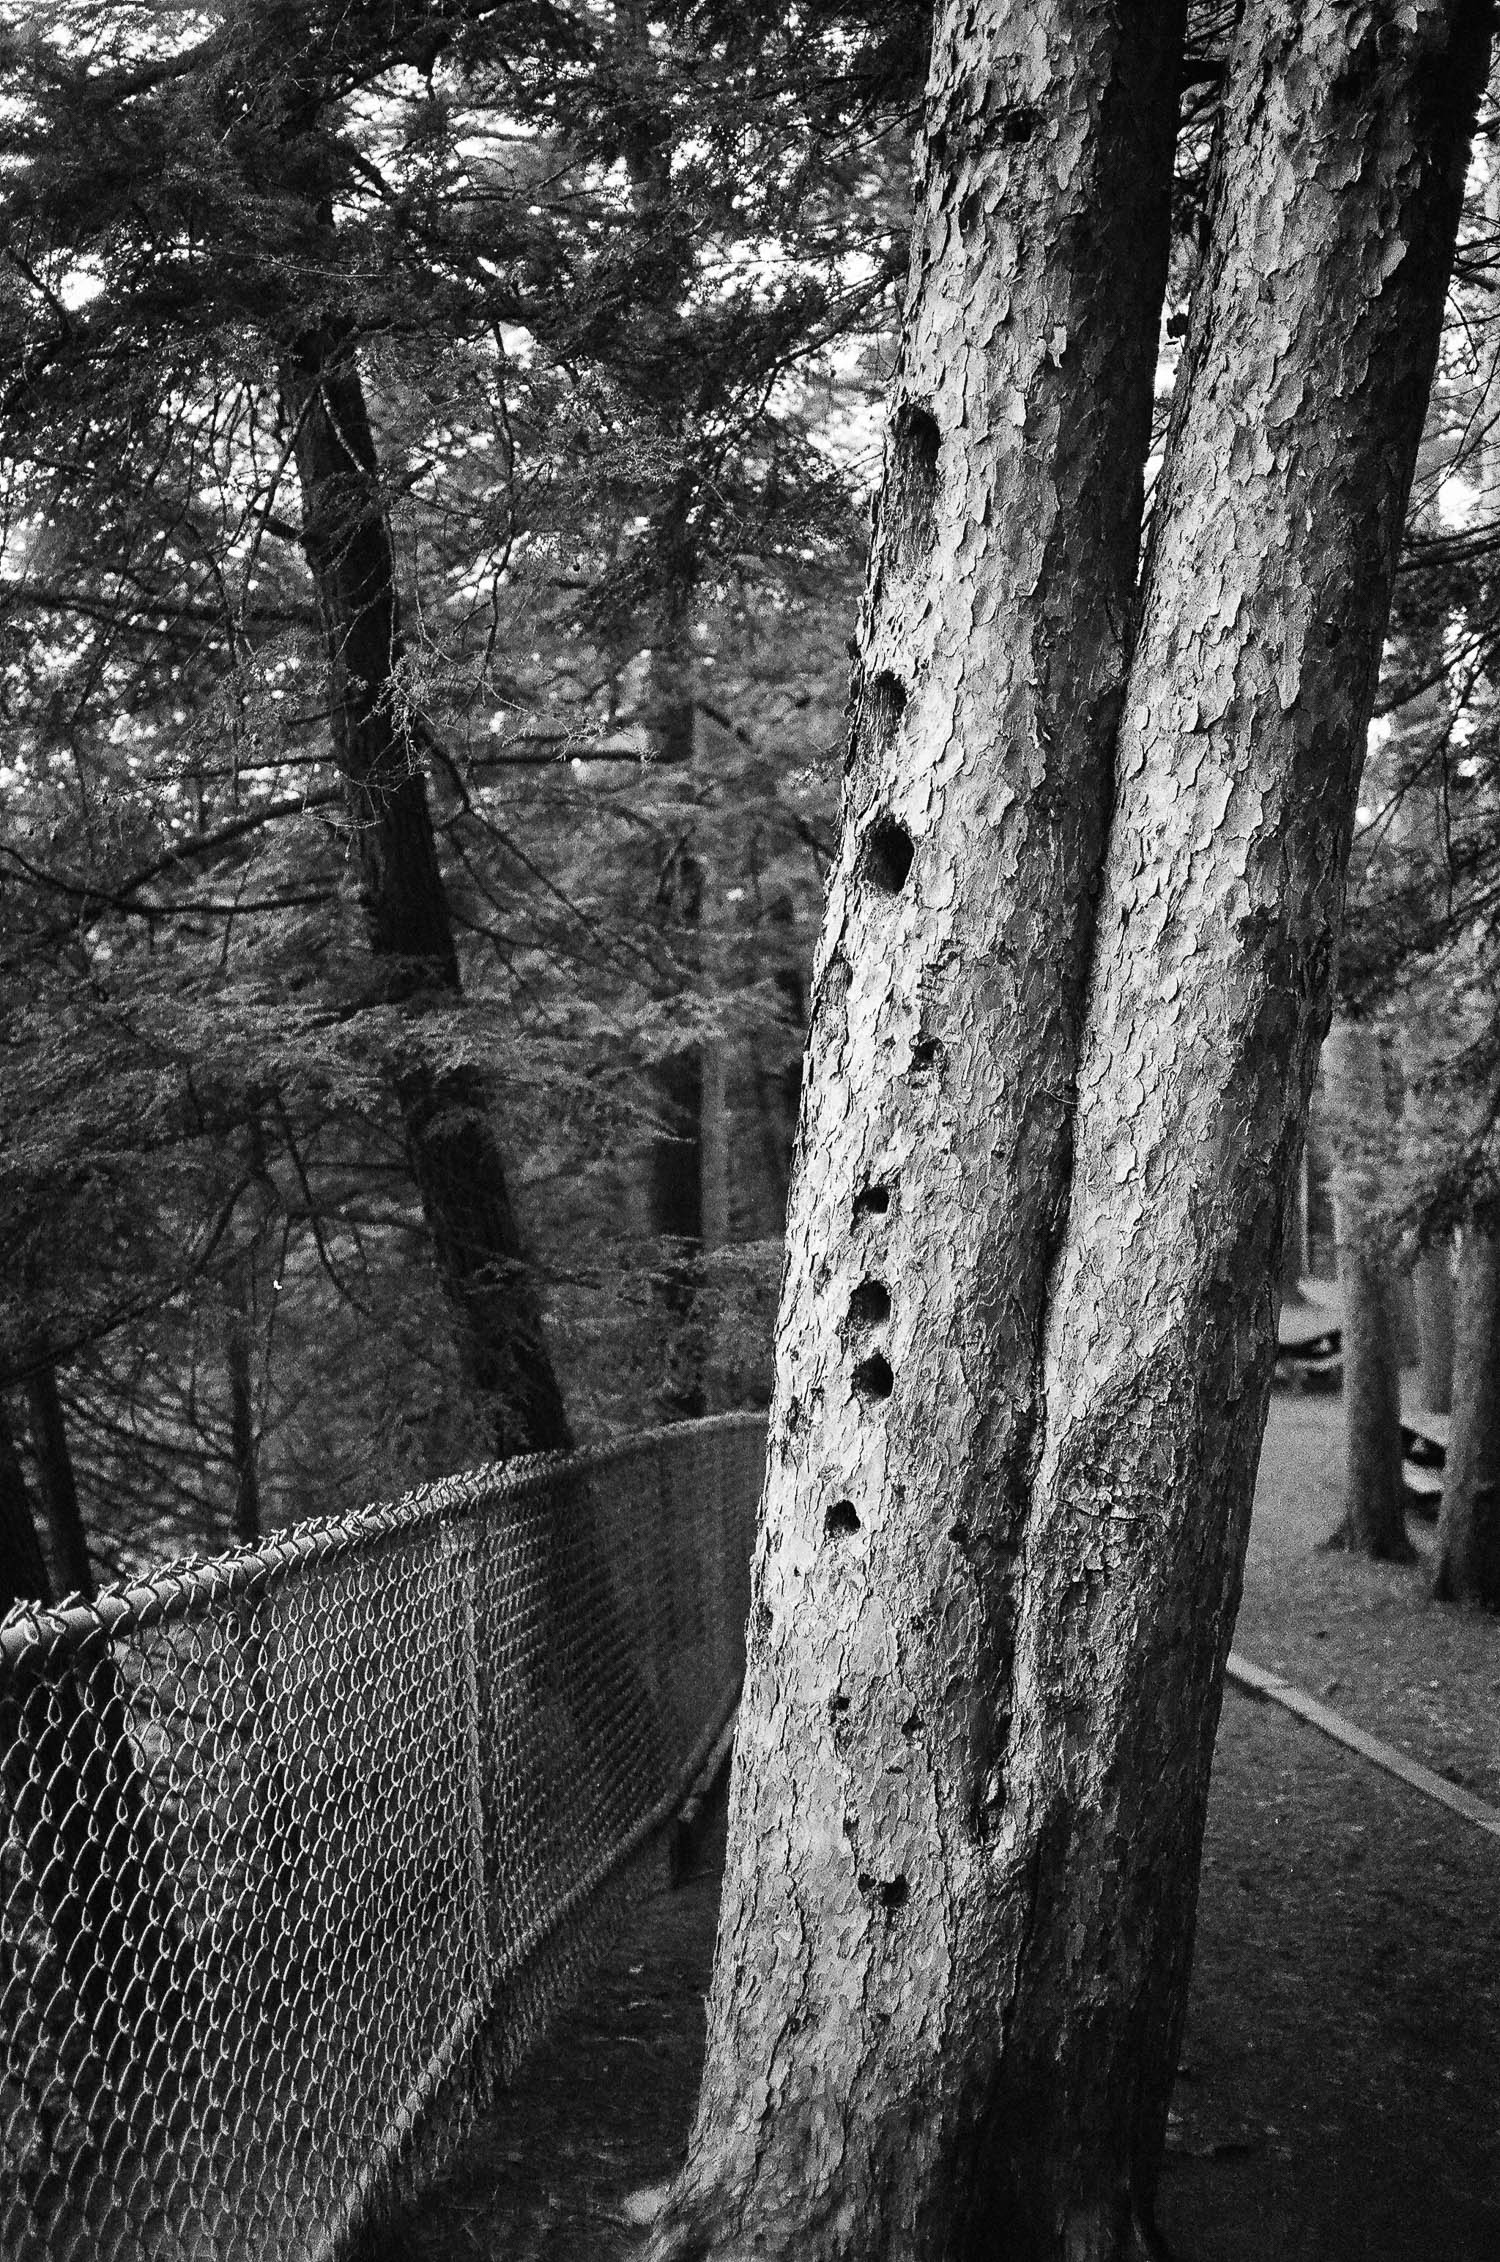 A tree riddled with holes from a woodpecker